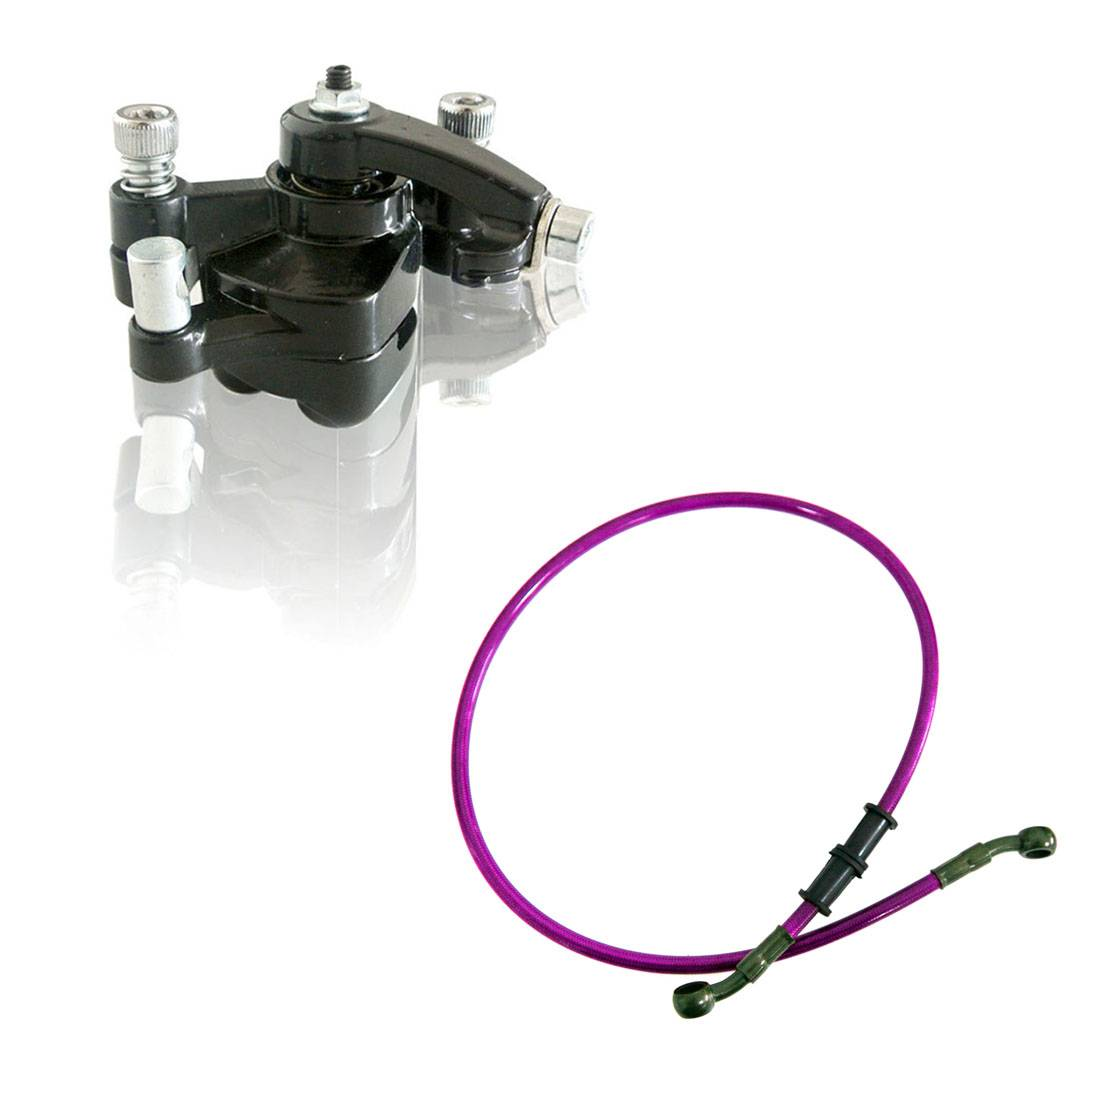 80cm Oil Brake Fuel Line Rear Disc Brake Caliper W/ Pad 47cc 49cc Mini PIT Dirt Quad